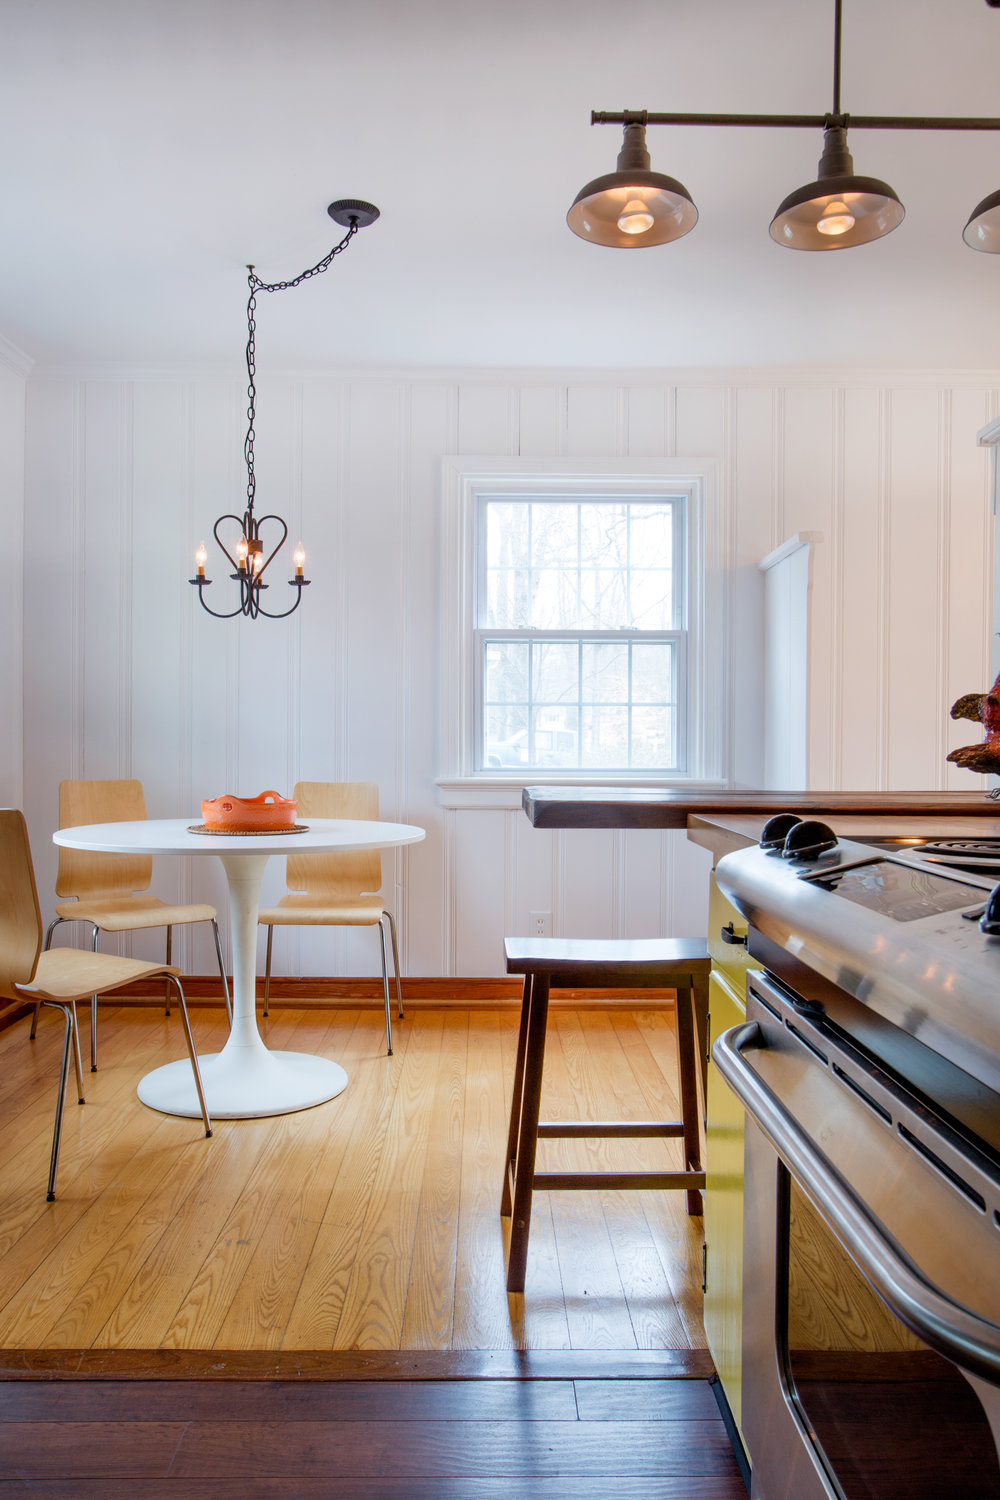 To Dining Room from Kitchen. (Photo: Kent Eanes)